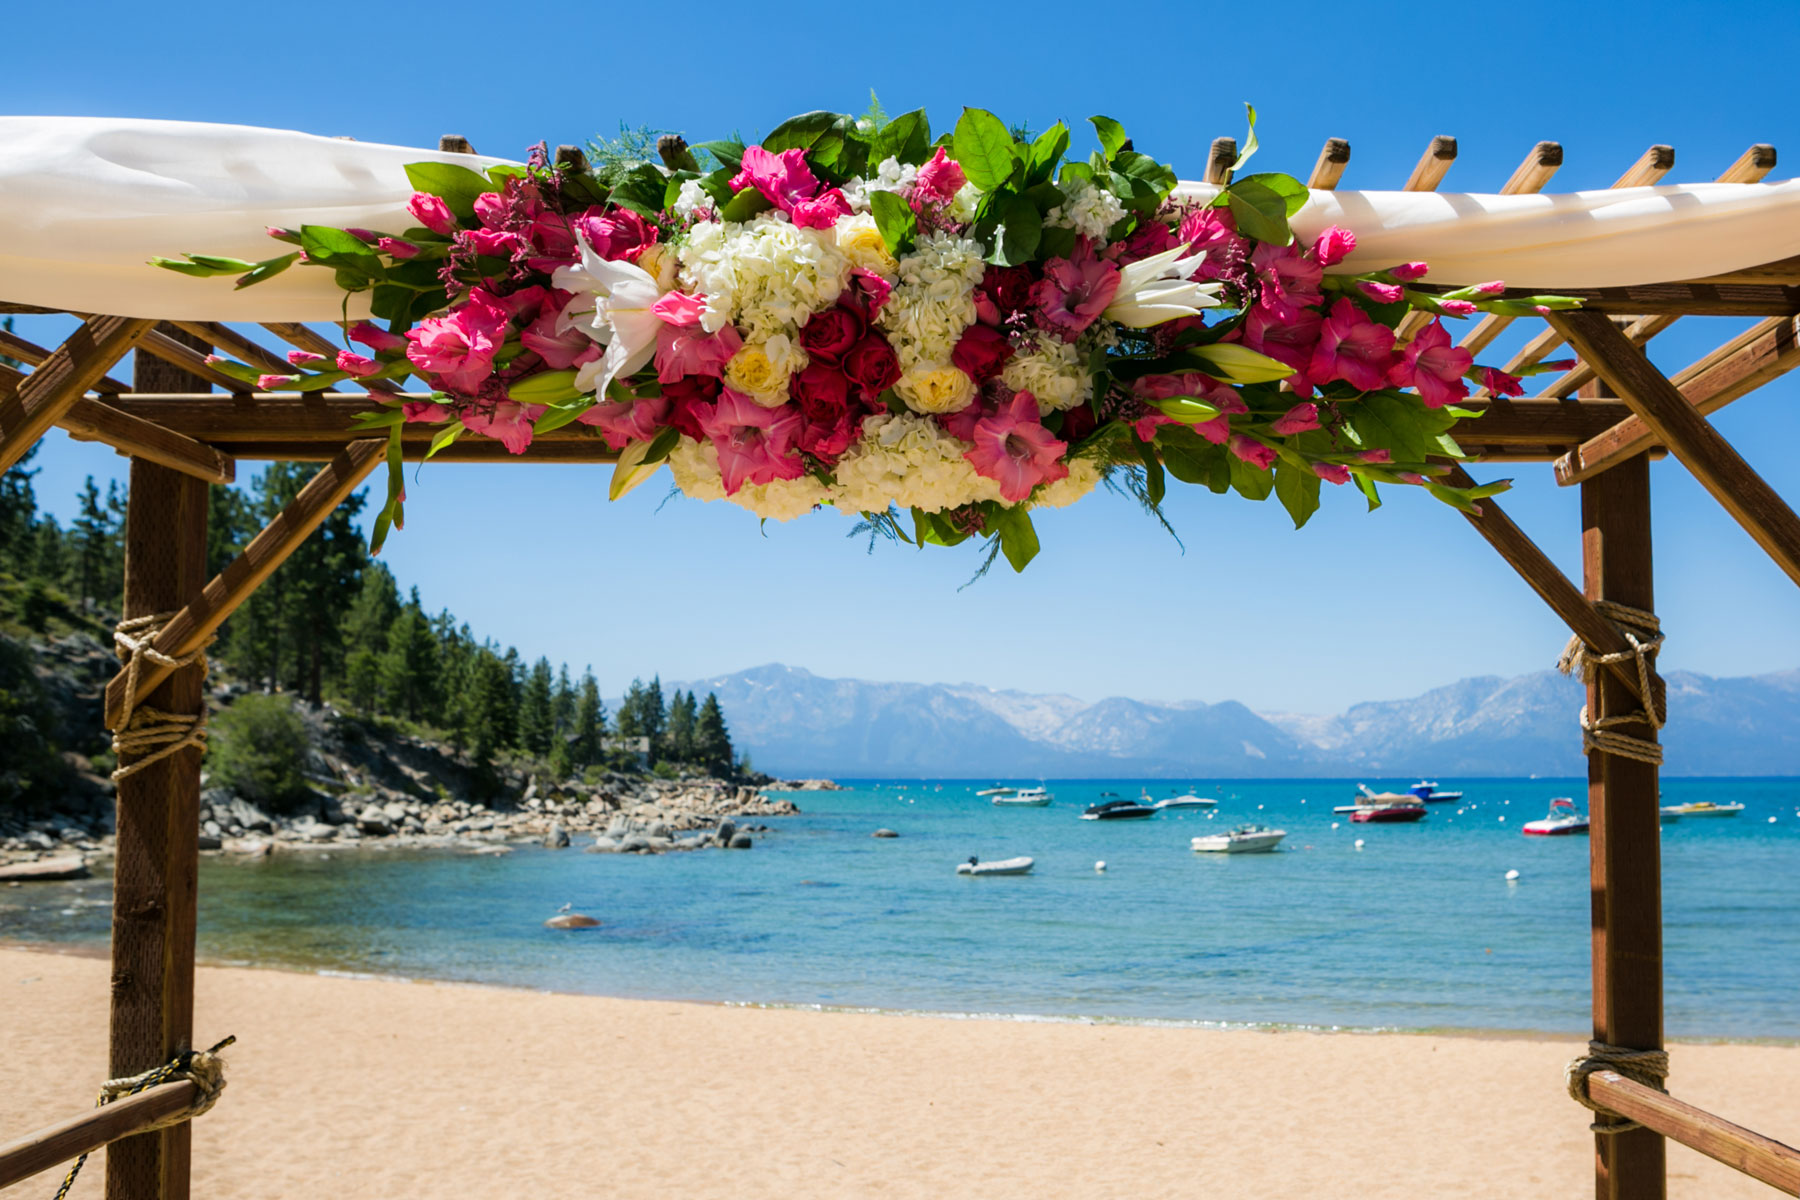 south-lake-tahoe-weddings-2-tahoe-wedding